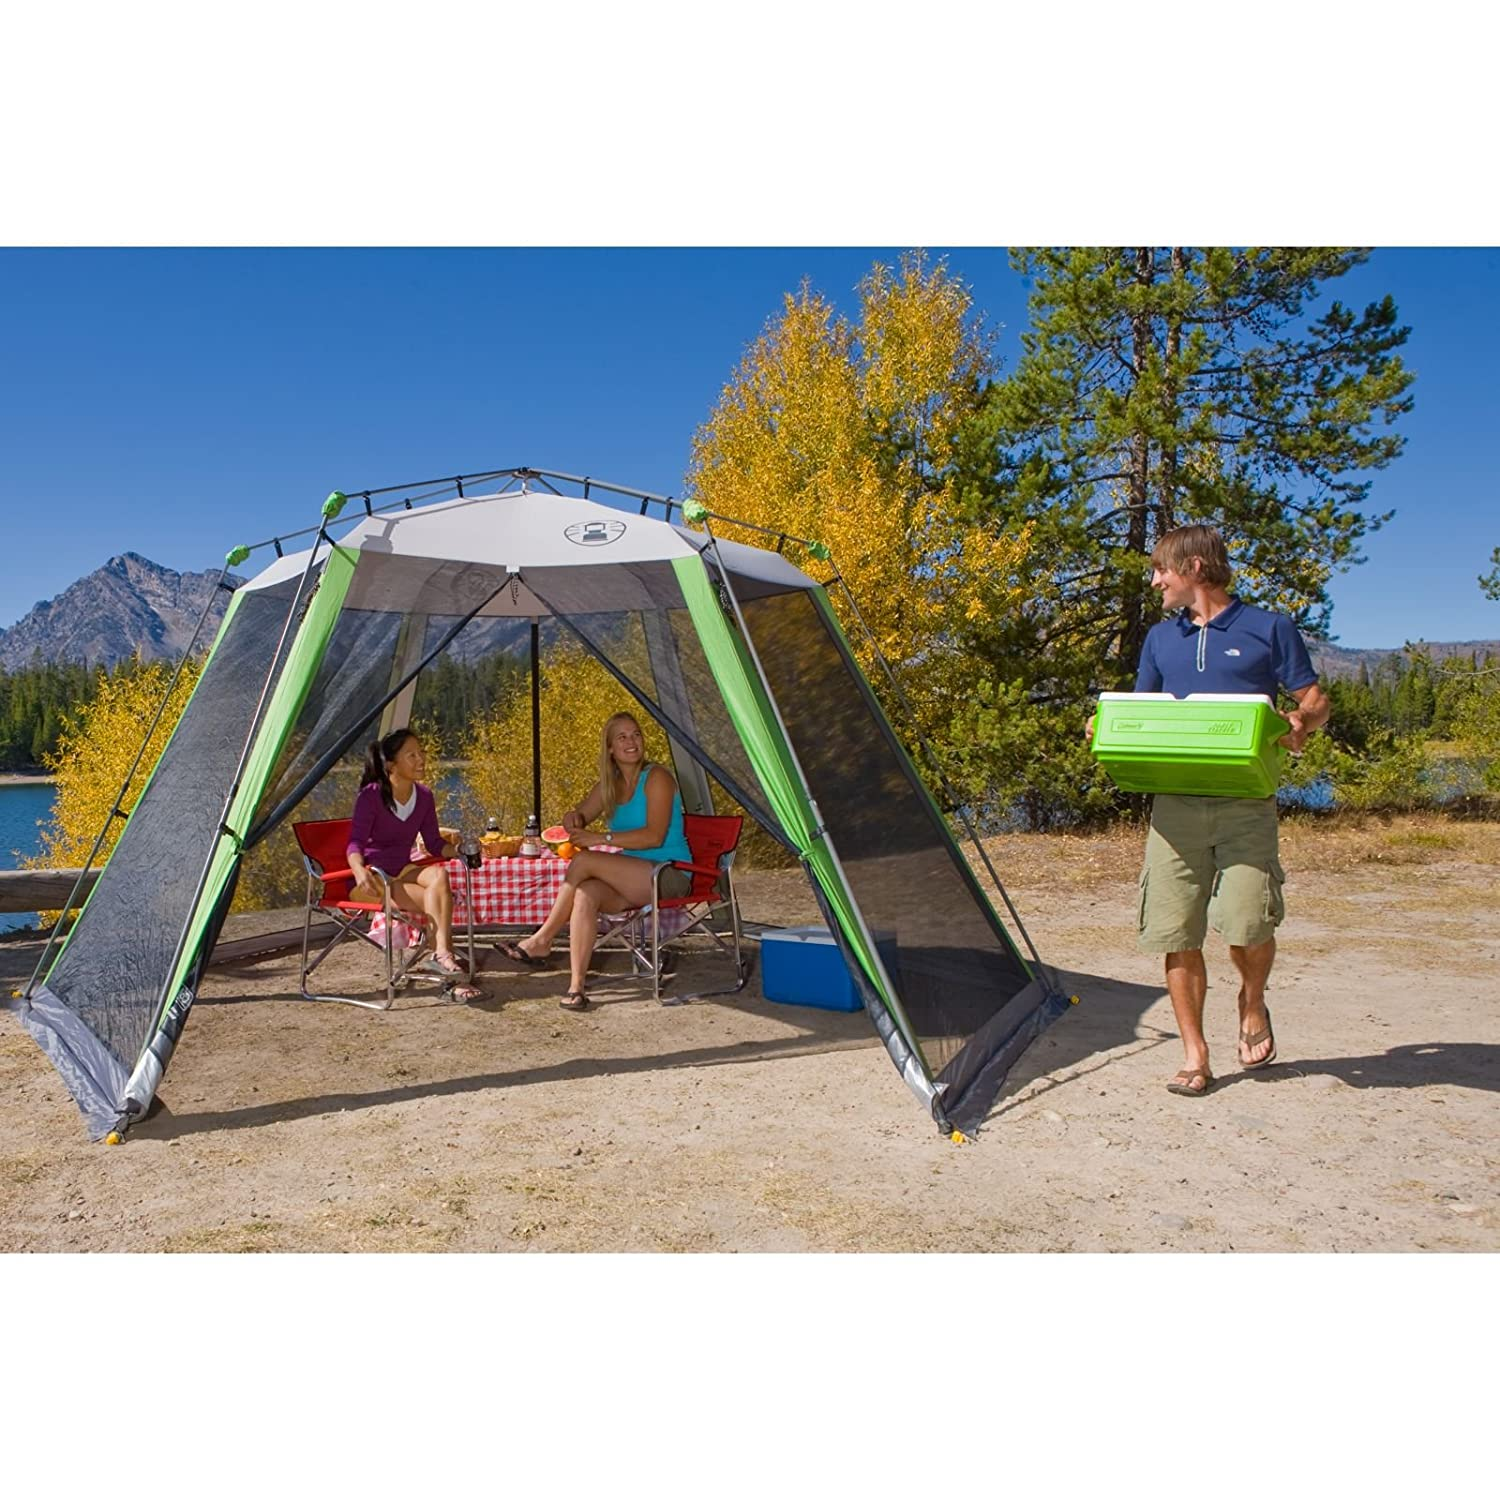 Amazon.com  Coleman Instant Screenhouse 15 x 13 Feet  Screen Houses  Sports u0026 Outdoors  sc 1 st  Amazon.com & Amazon.com : Coleman Instant Screenhouse 15 x 13 Feet : Screen ...